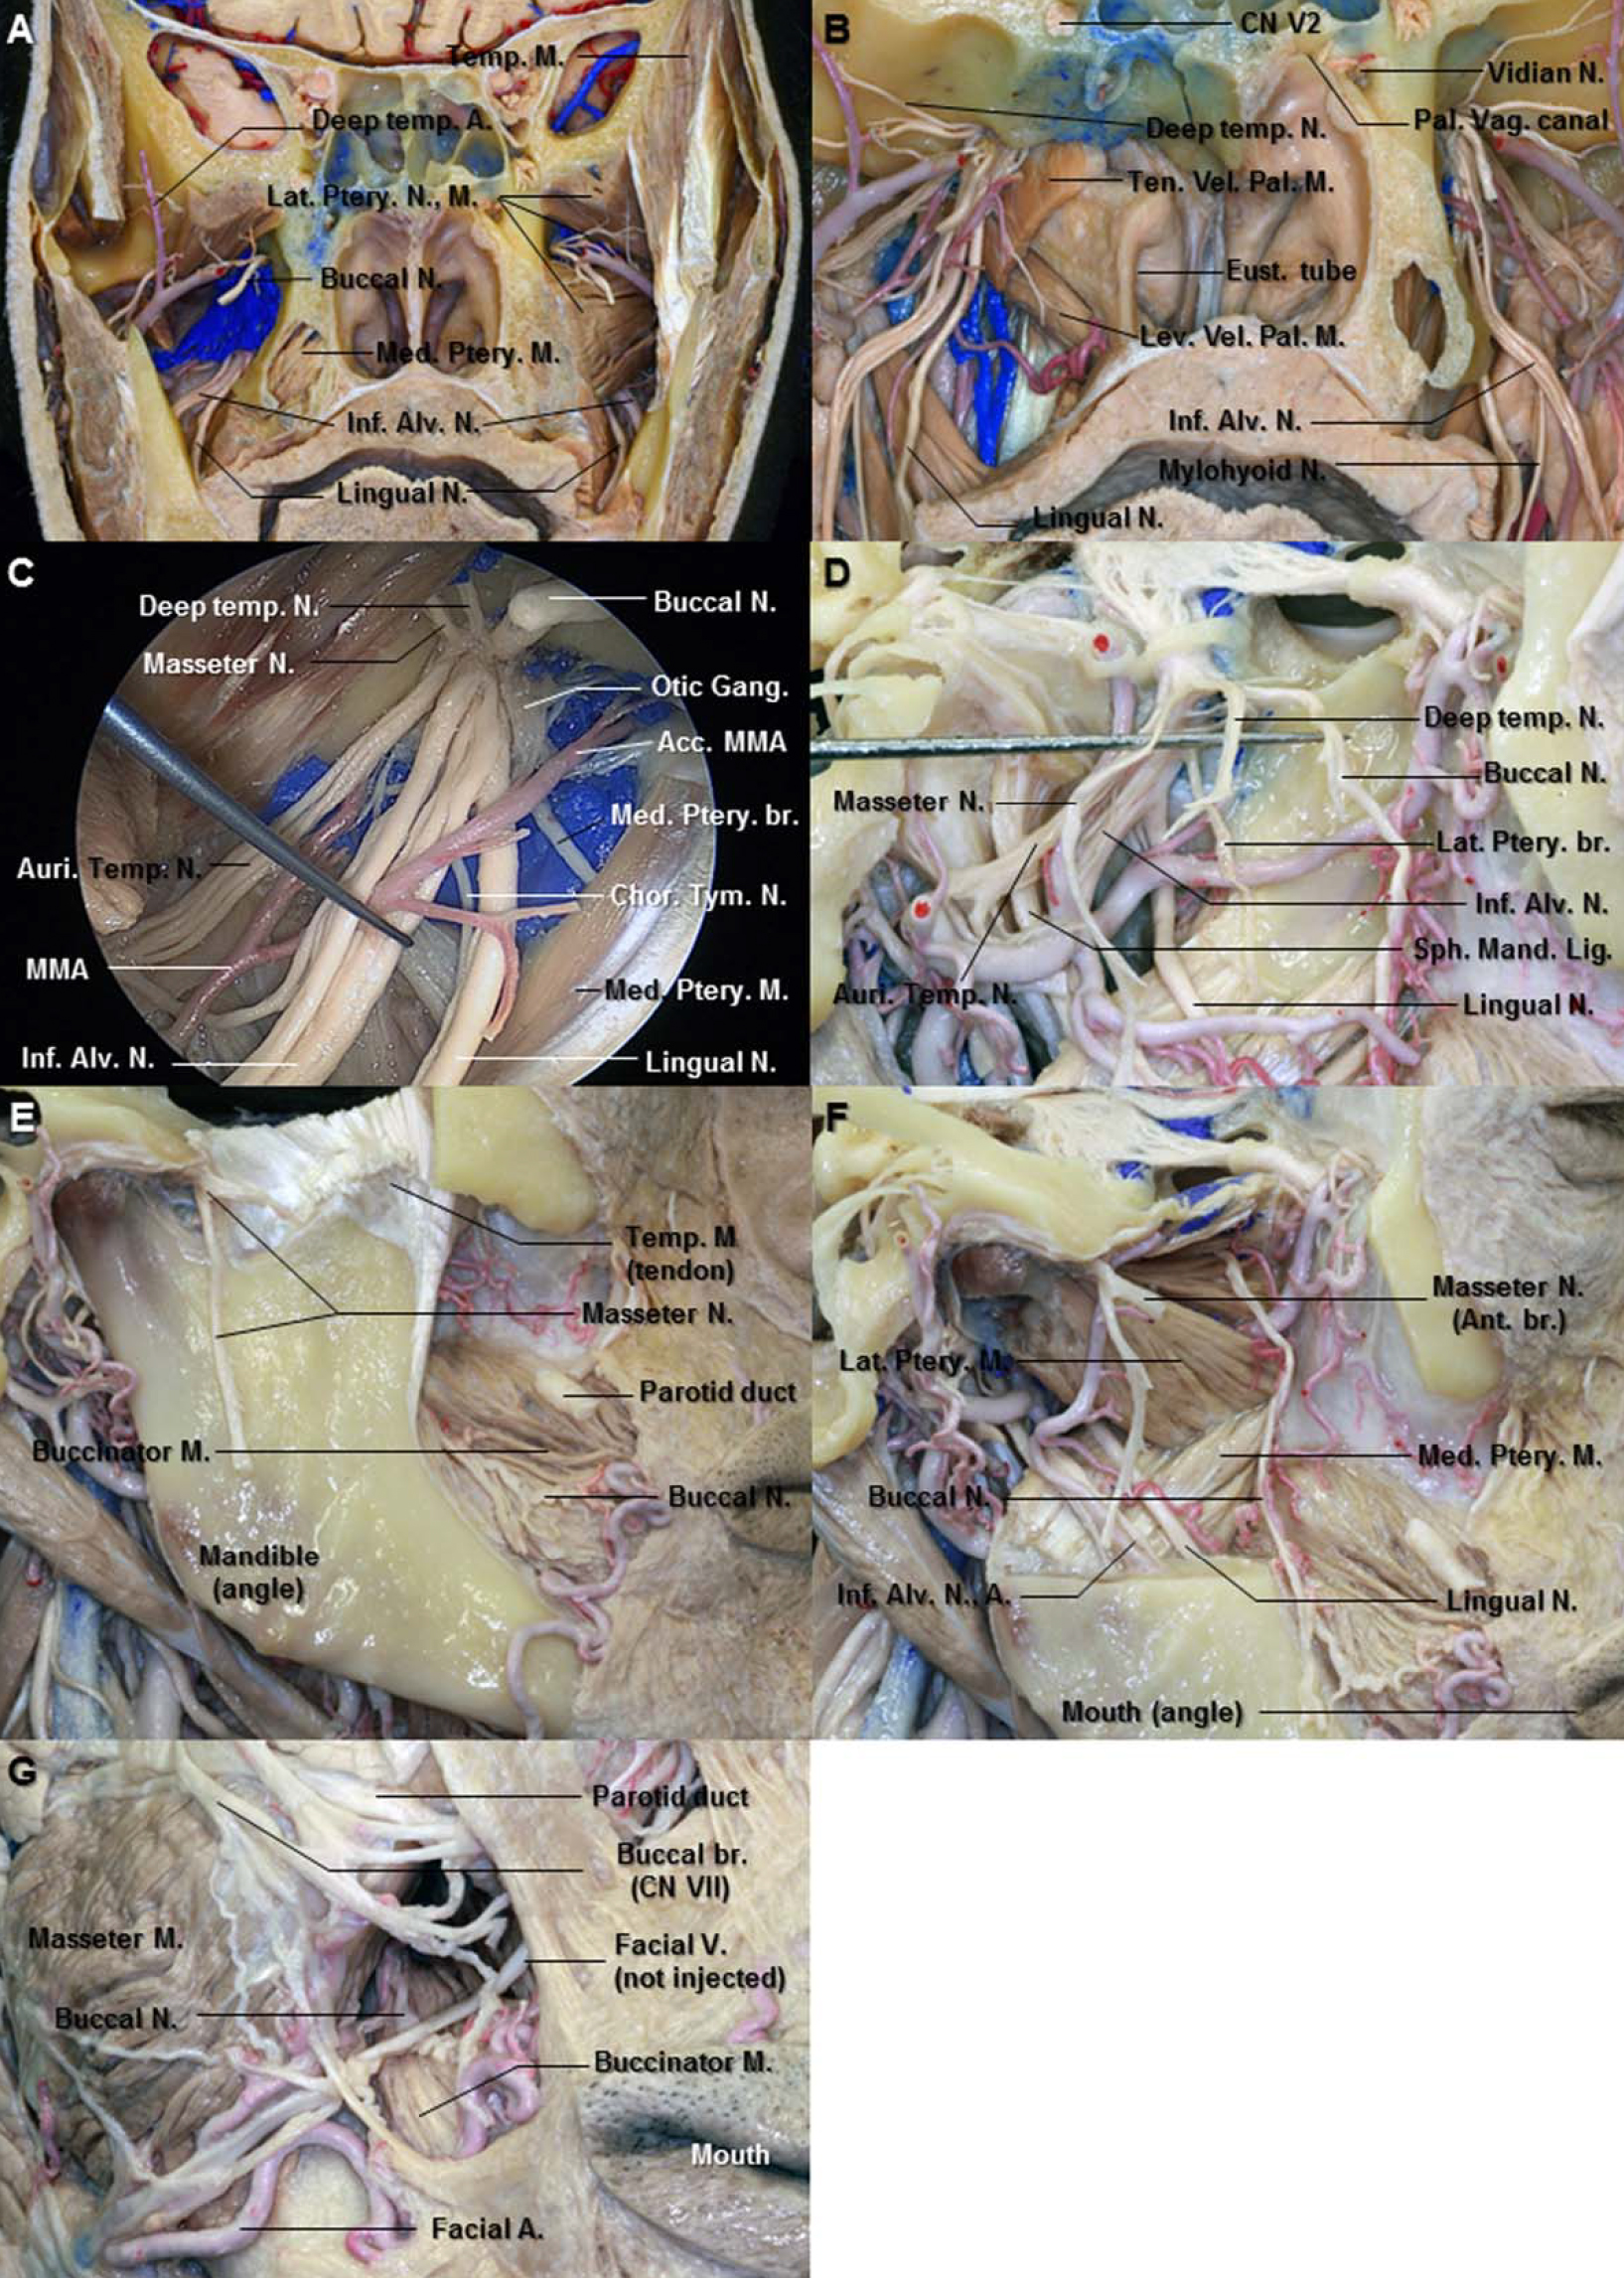 Figure 11. A. Coronal section just behind the pterygopalatine fossa. The right lateral pterygoid muscle has been removed from the pterygoid venous plexus and posterior division of the mandibular nerve. The nerve to the lateral pterygoid muscle originates from the buccal nerve passing between the two heads of the lateral pterygoid. B. The right pterygoid venous plexus and pterygoid plates have been removed to expose the branches of the mandibular nerve. The posterior division of the mandibular nerve descends between the lateral pterygoid muscle (removed) and tensor veli palatini muscle (cut). The palatovaginal canal is located media to the vidian canal. C. Enlarged view of the proximal portion of the right mandibular nerve. The nerve to the medial pterygoid muscle arises from the medial aspect of the mandibular nerve close to the otic ganglion. D. Lateral view of the right infratemporal fossa. The mandibular ramus and lateral pterygoid muscle have been removed. The buccal, deep temporal, and masseter nerves have been elevated with the dissector. This division passes in the horizontal plane. The auriculotemporal nerve passes backward between the sphenomandibular ligament and the ramus of the mandible (removed). E. The masseter muscle has been removed from the mandible to expose the masseter nerve. The masseter nerve passes laterally above the lateral pterygoid muscle in front of the temporomandibular joint and behind the tendon of the temporal muscle. It runs to the deep surface of the master muscle. F. The mandibular ramus has been removed to expose the lingual and the inferior alveolar nerves. G. Anterior view of the right cheek. The buccal nerve emerges from the undersurface of the ramus of mandible and unites with the buccal branches of the facial nerve. Abbreviations: Acc. MMA., Accessory middle meningeal artery; Ant., anterior; Alv., alveolar; Auri. Temp. N., auriculotemporal nerve; Br., branch; Chor.-Tym. N., chorda tympani nerve; CN., cranial nerve; Eust., Eustachian; Gang., ganglion; Inf., inferior; Lat., lateral; Lev. Vel. Pal. M., levator veli palatini muscle; M., muscle; Med., medial; N., nerve; Pal. Vag., palatovaginal; Sph. Mand. Lig., sphenomandibular ligament; Temp., temporal; Ten. Vel. Pal. M., tensor veli palatini muscle. (Images courtesy of AL Rhoton, Jr.)